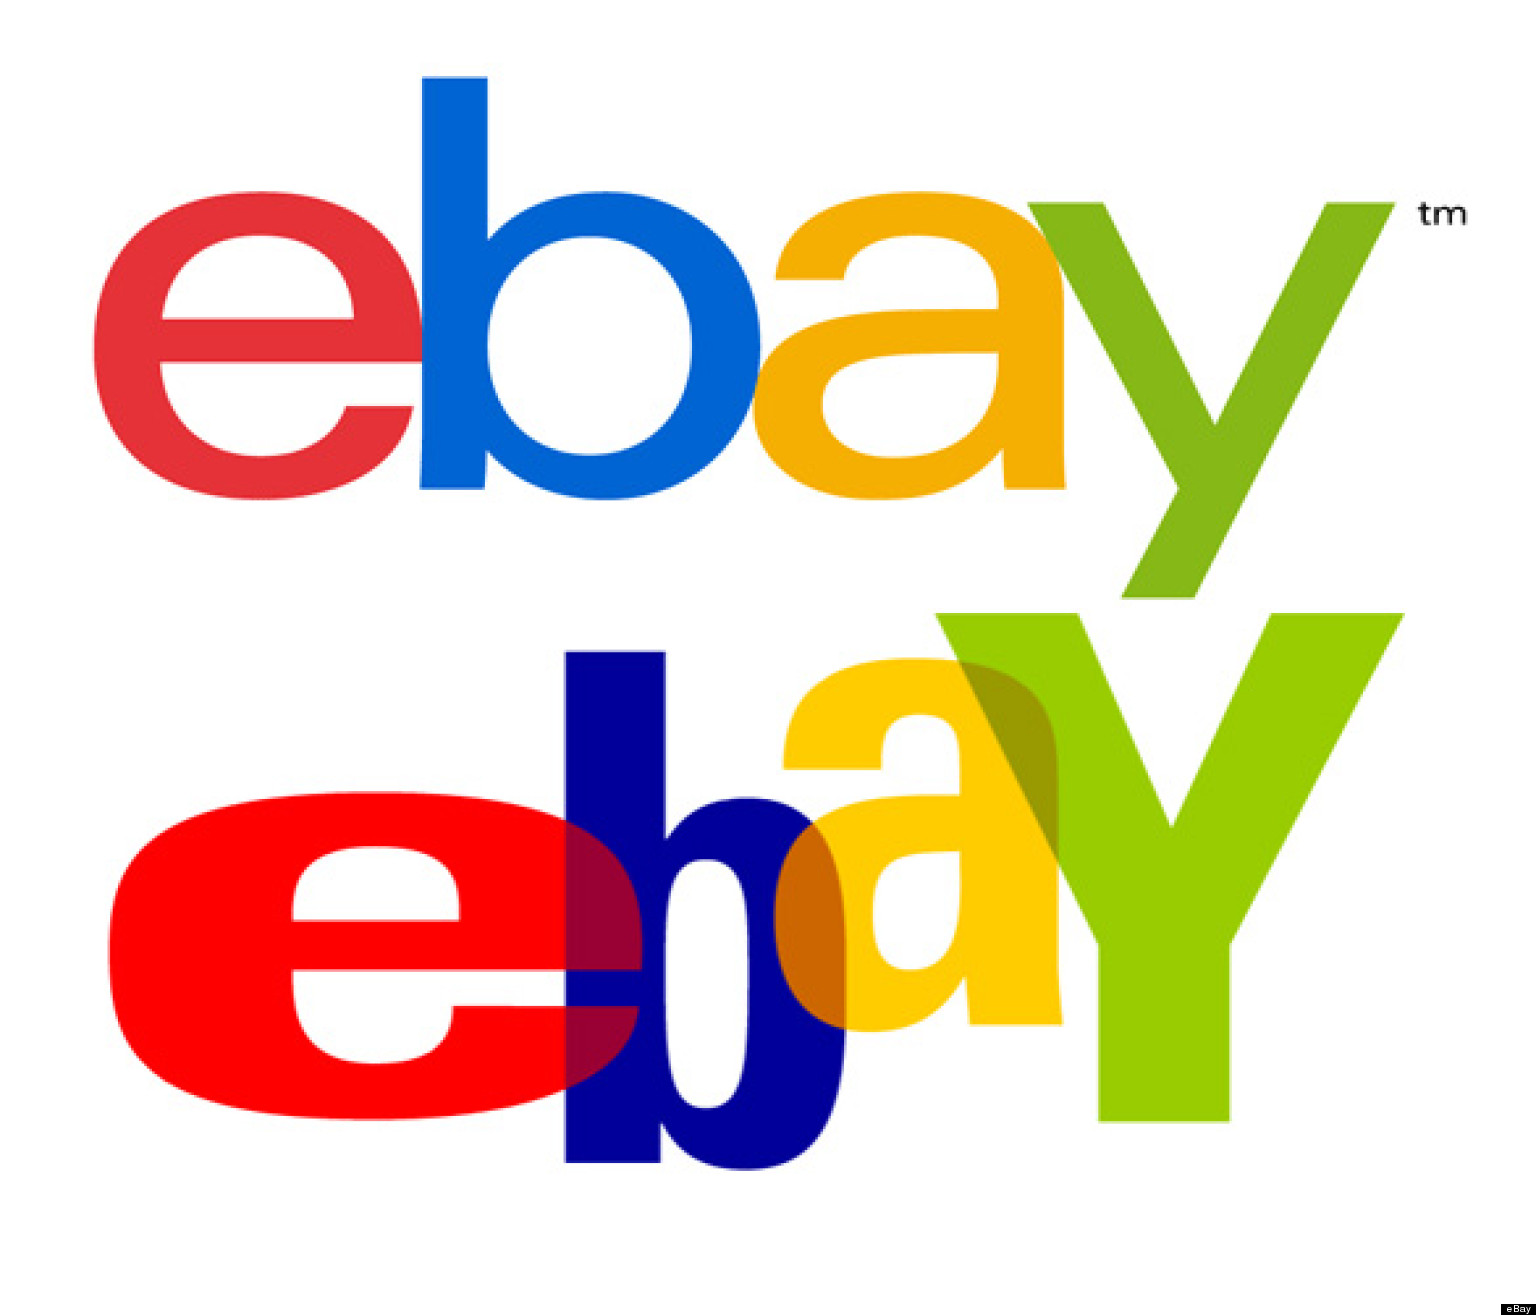 eBay New Logo: A Lot Like The Old Logo, But With A Cleaner Font ...